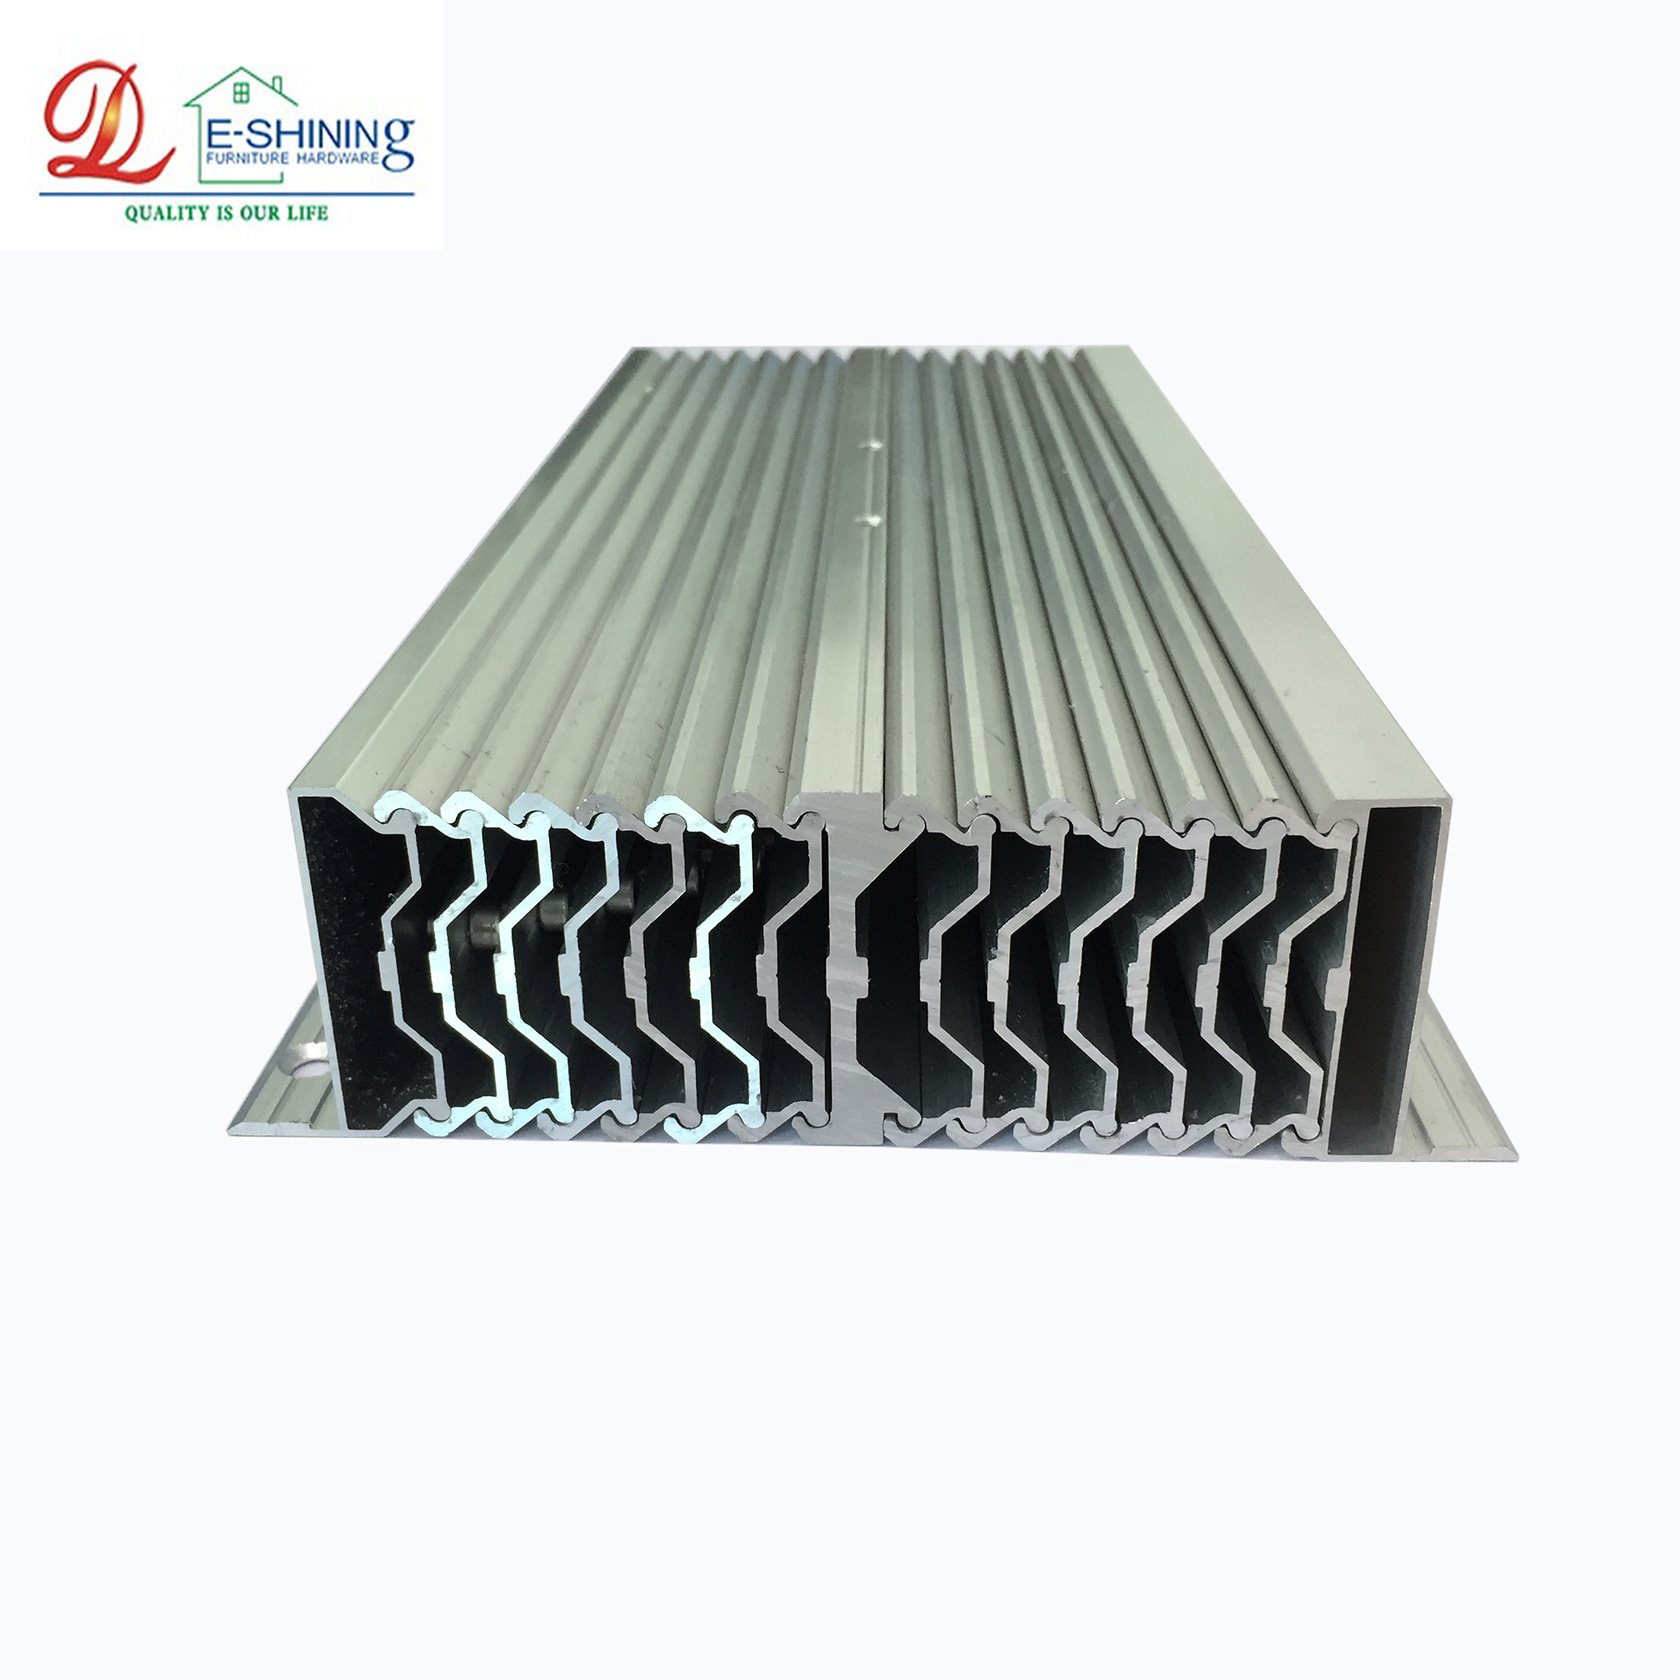 Multisection Aluminum Alloy Table Slide